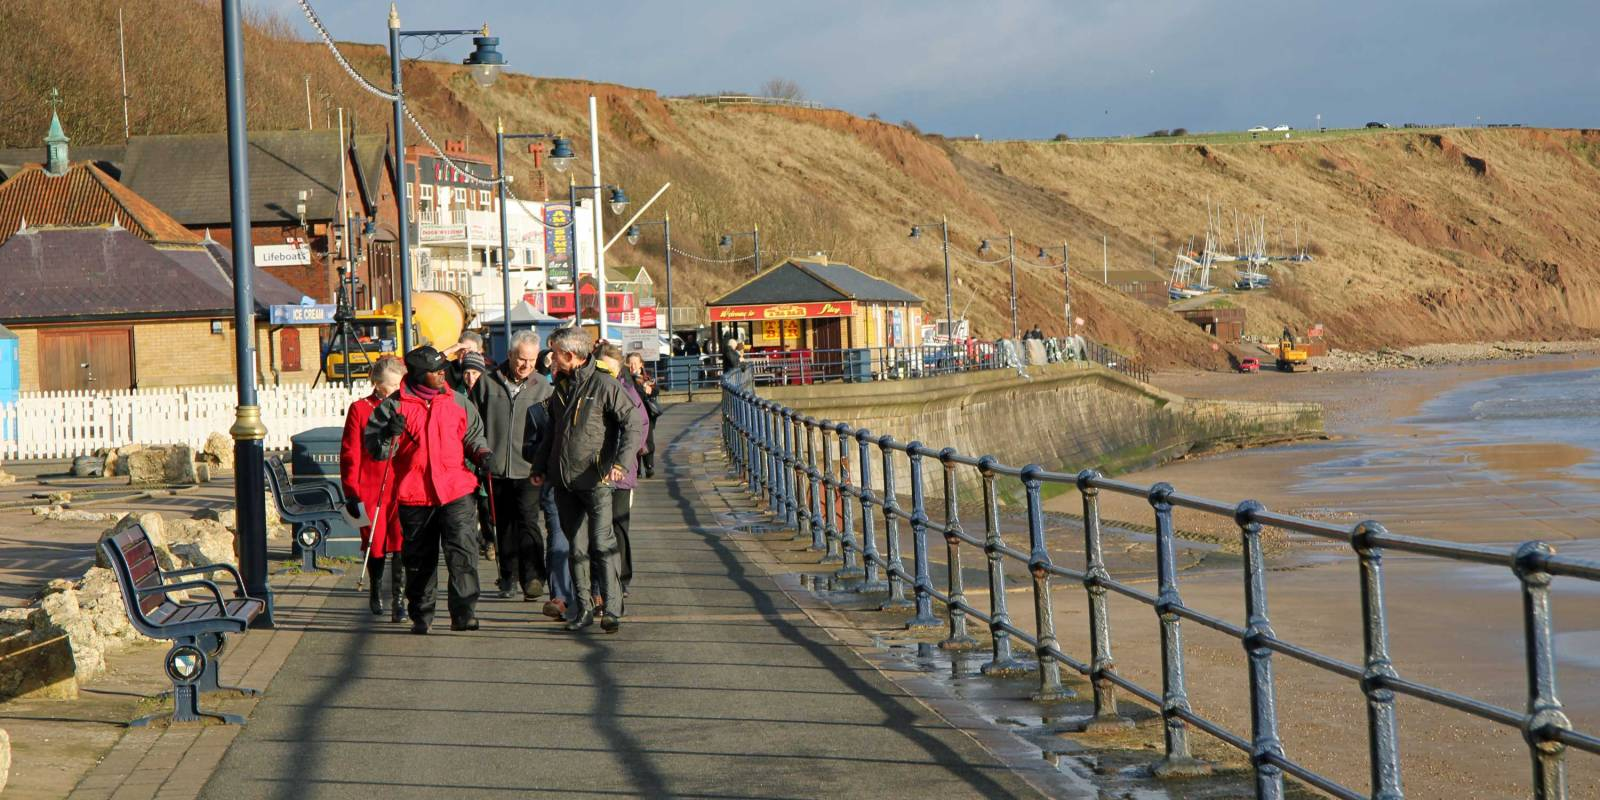 Archbishop on Pilgrimage at Filey